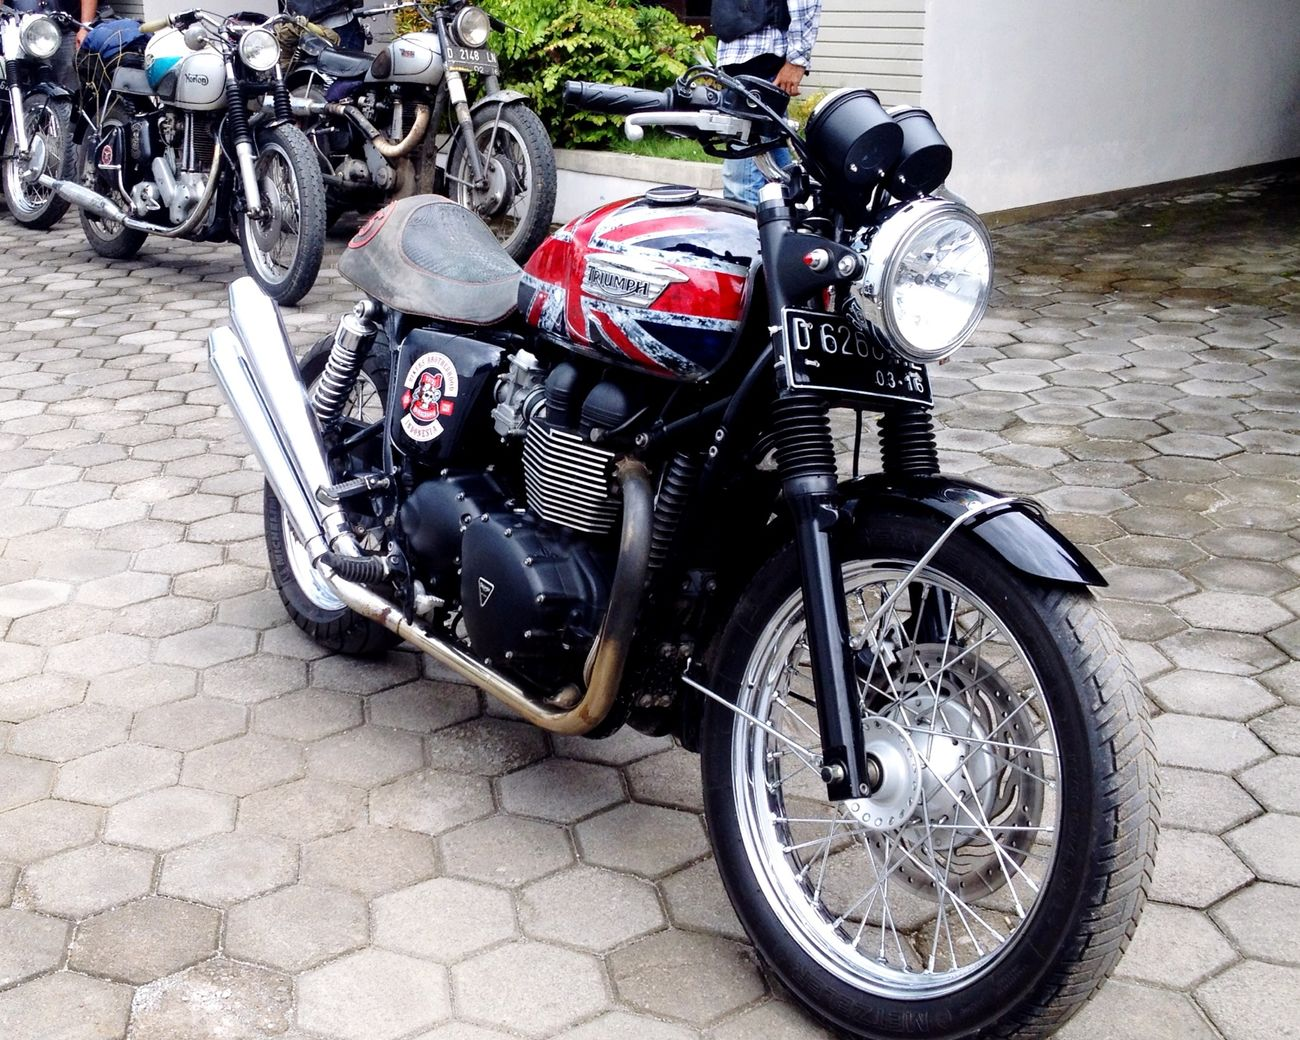 Triumph respect bike Old Classic Motorcycle Enjoying Life 1% Great Atmosphere Creative People Bikers Brotherhood Mc INDONESIA Triumphmotorcycles Norton Motorcycles Birmingham Small Arms